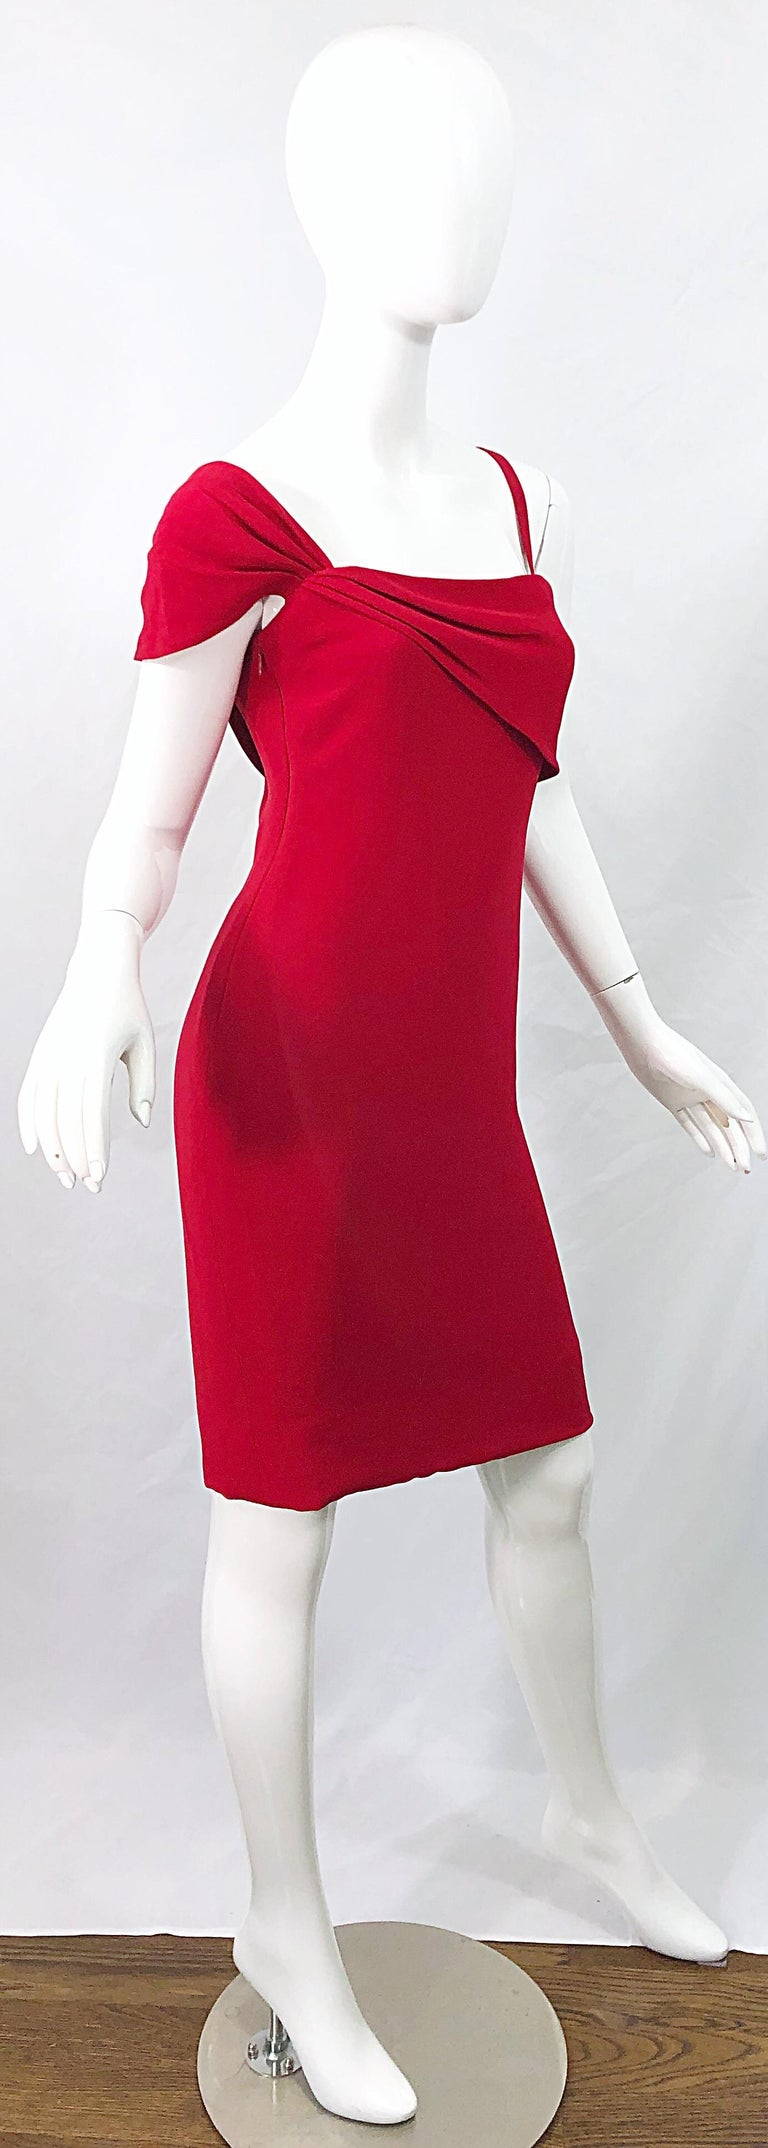 Vintage Bill Blass 1990s Size 6 Lipstick Red One Shoulder 90s Silk Dress For Sale 6